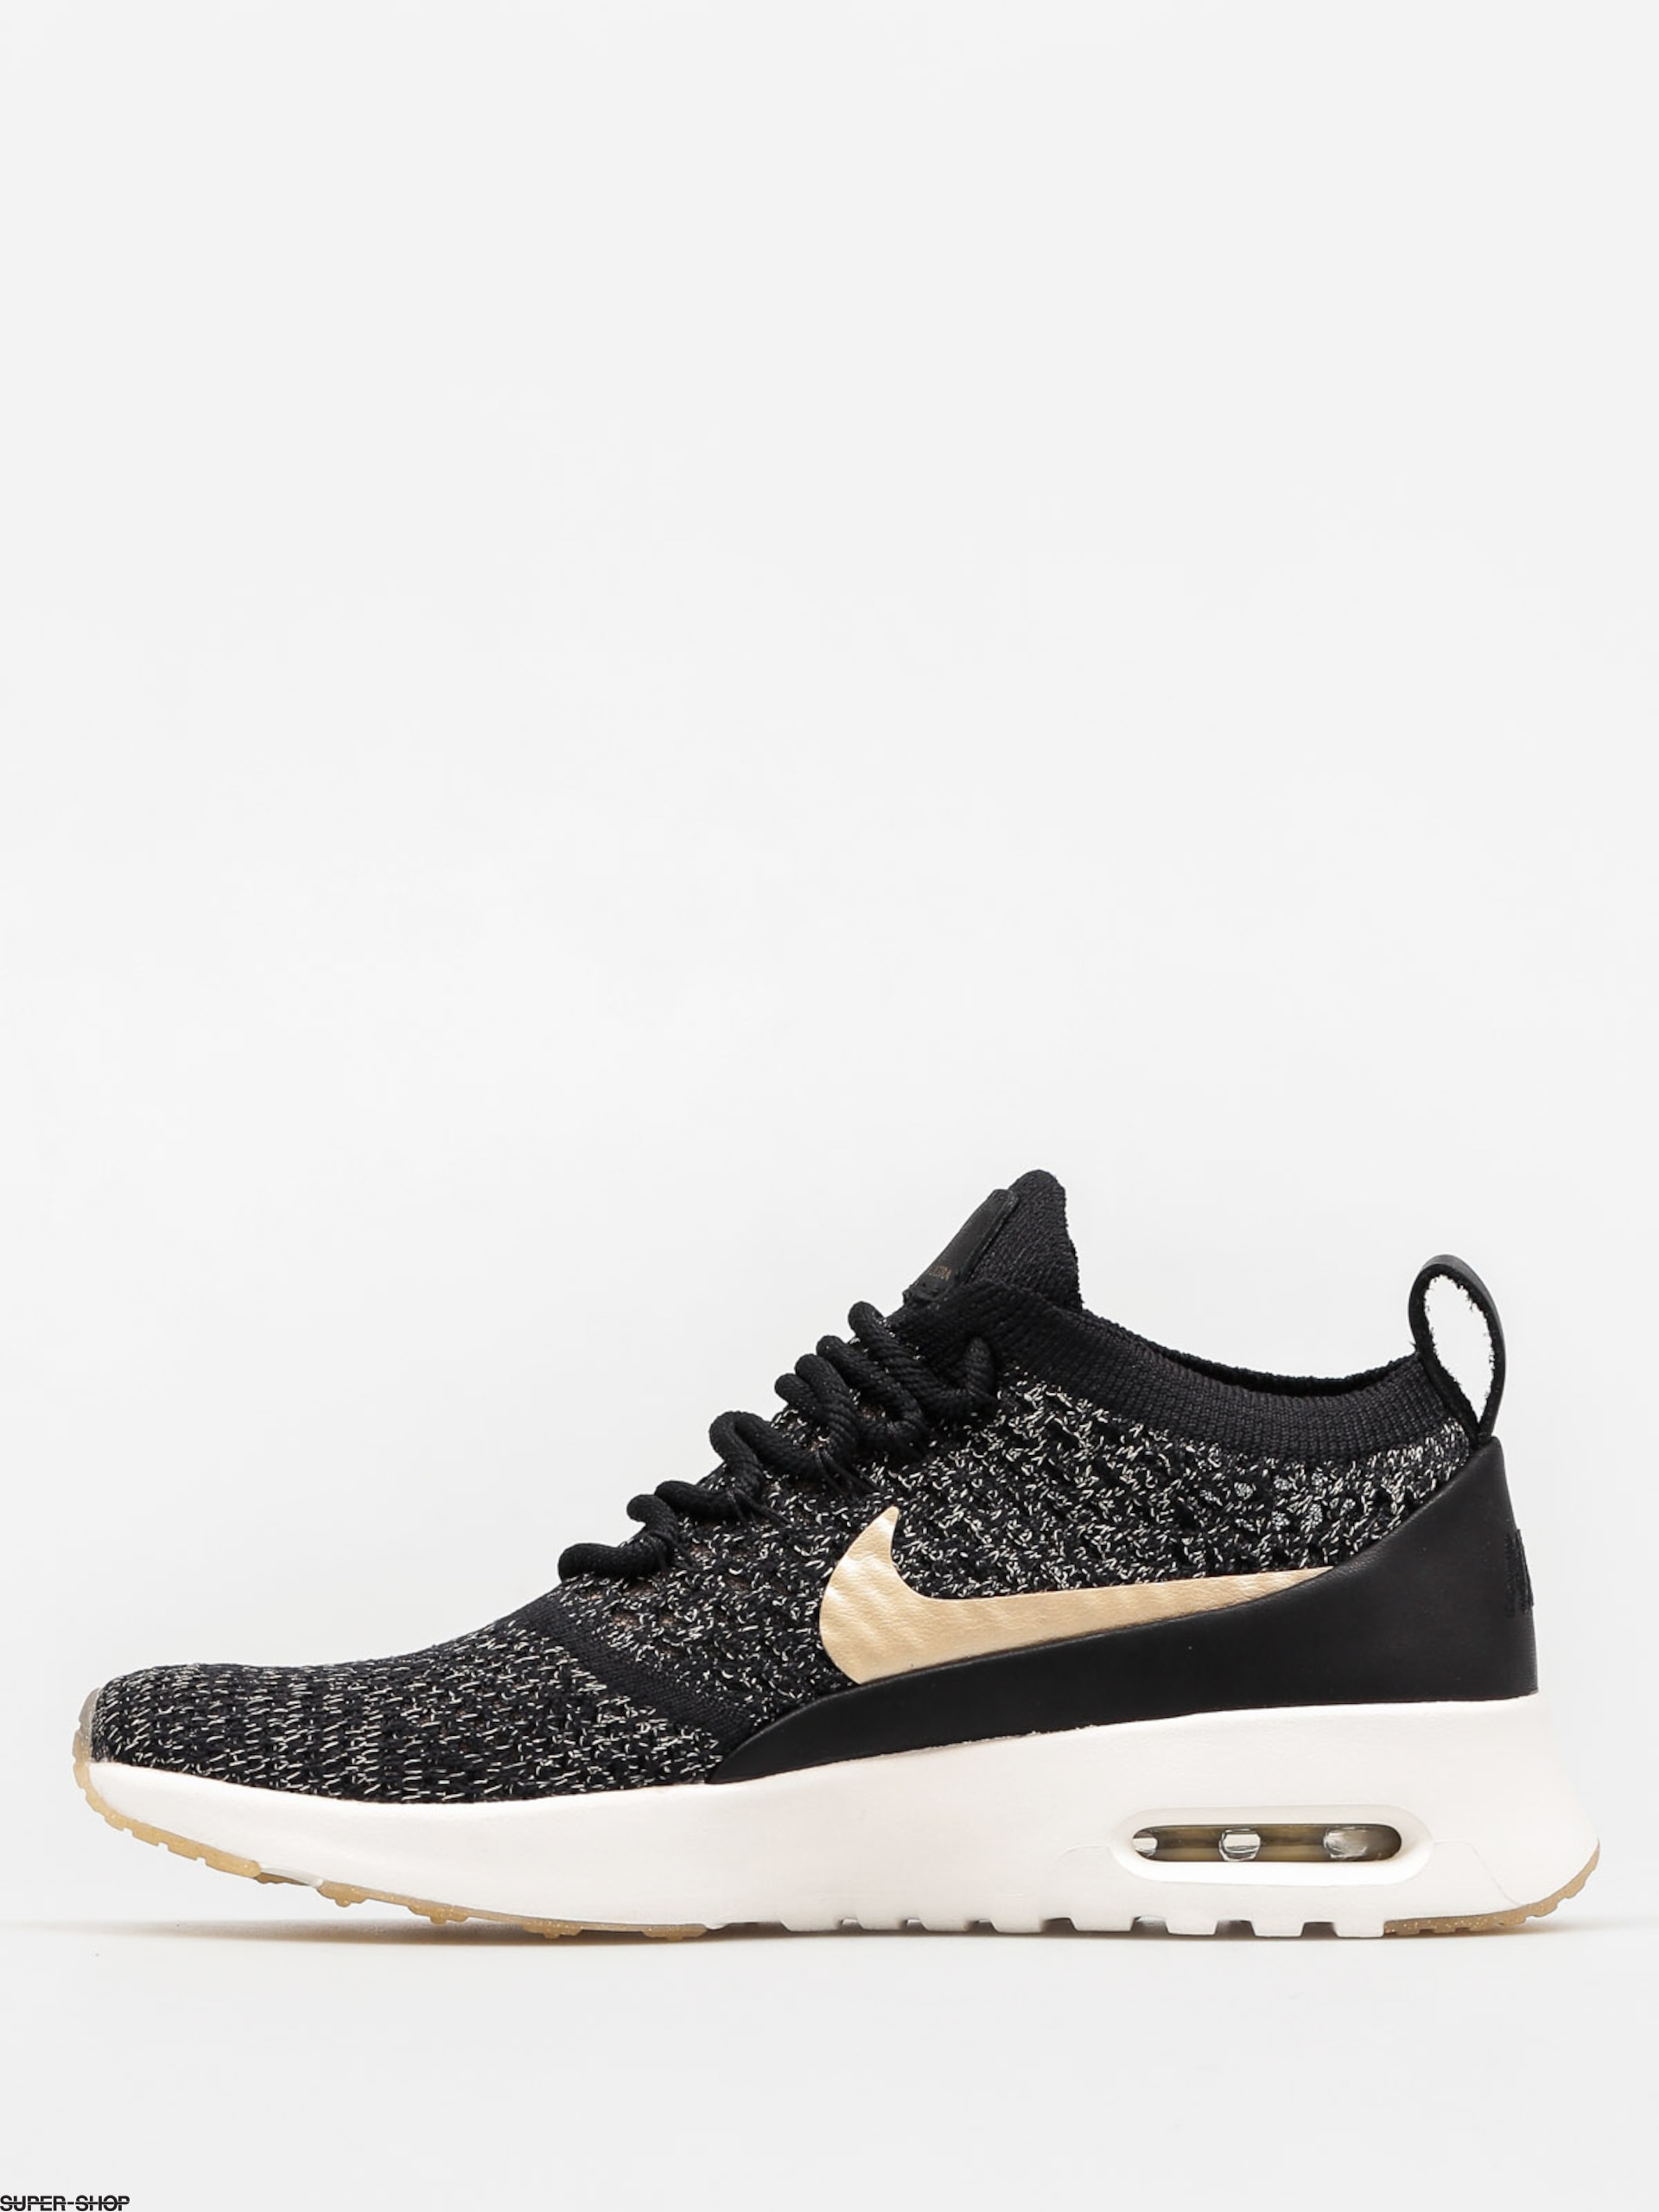 03cca078c379 ... Nike Shoes Air Max Thea Ultra Flyknit Metallic Wmn (blackmtlc gold star  ivory) ...